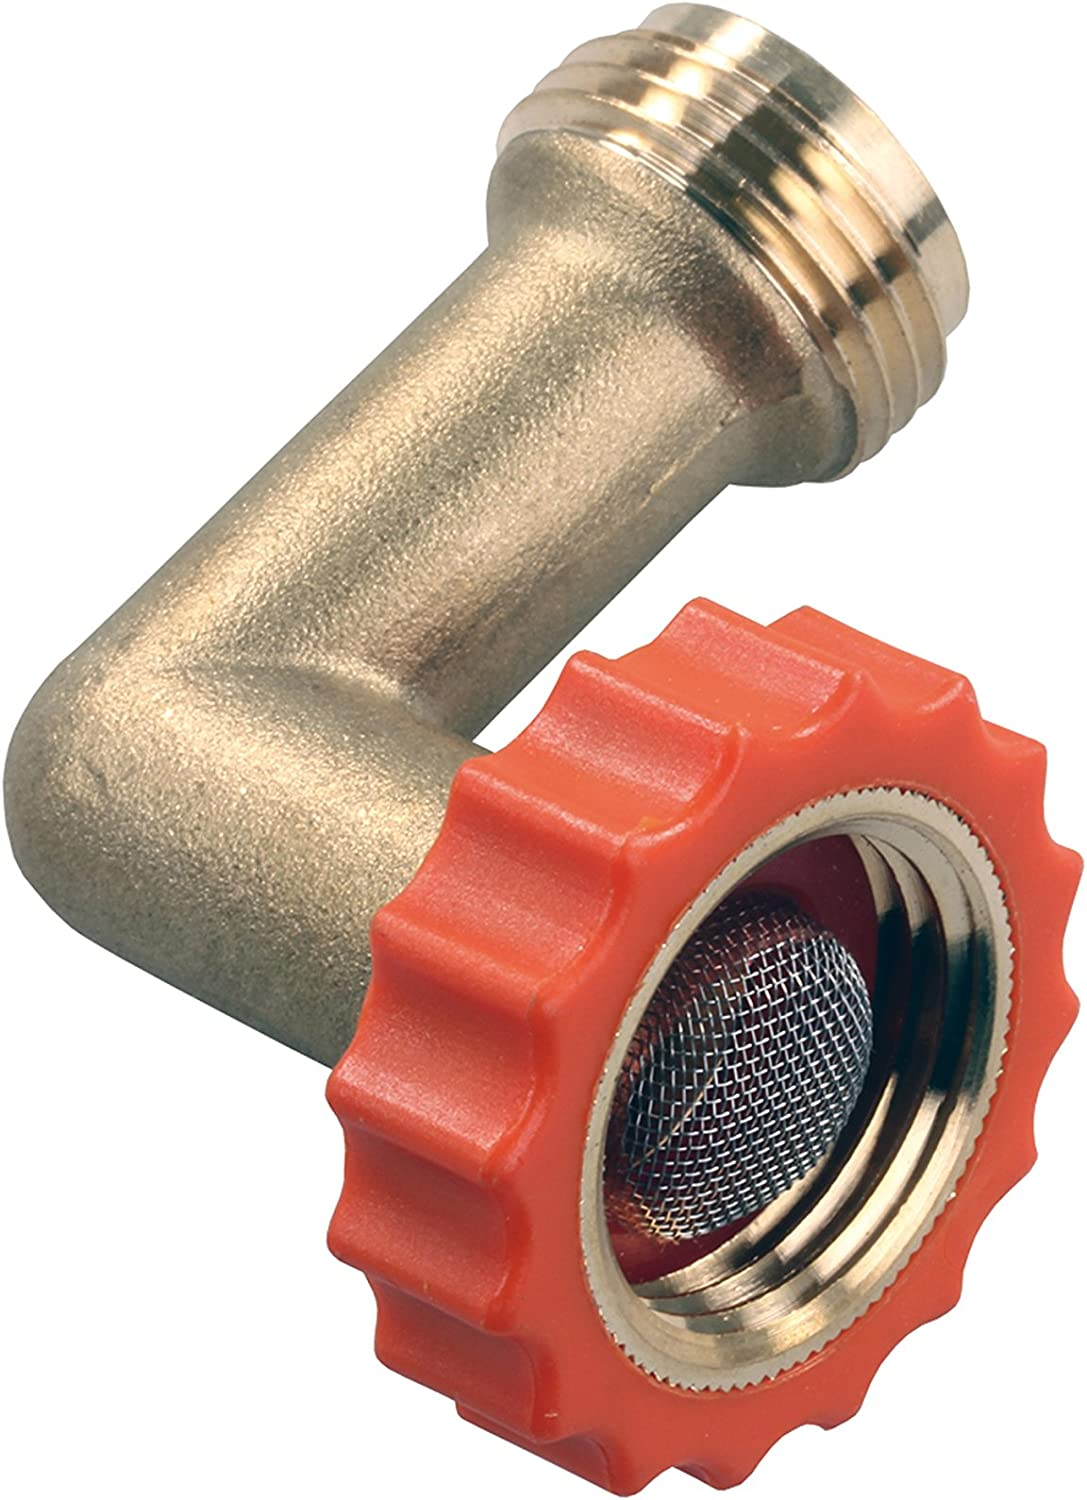 JR Products 62235 Hose Saver - 90°